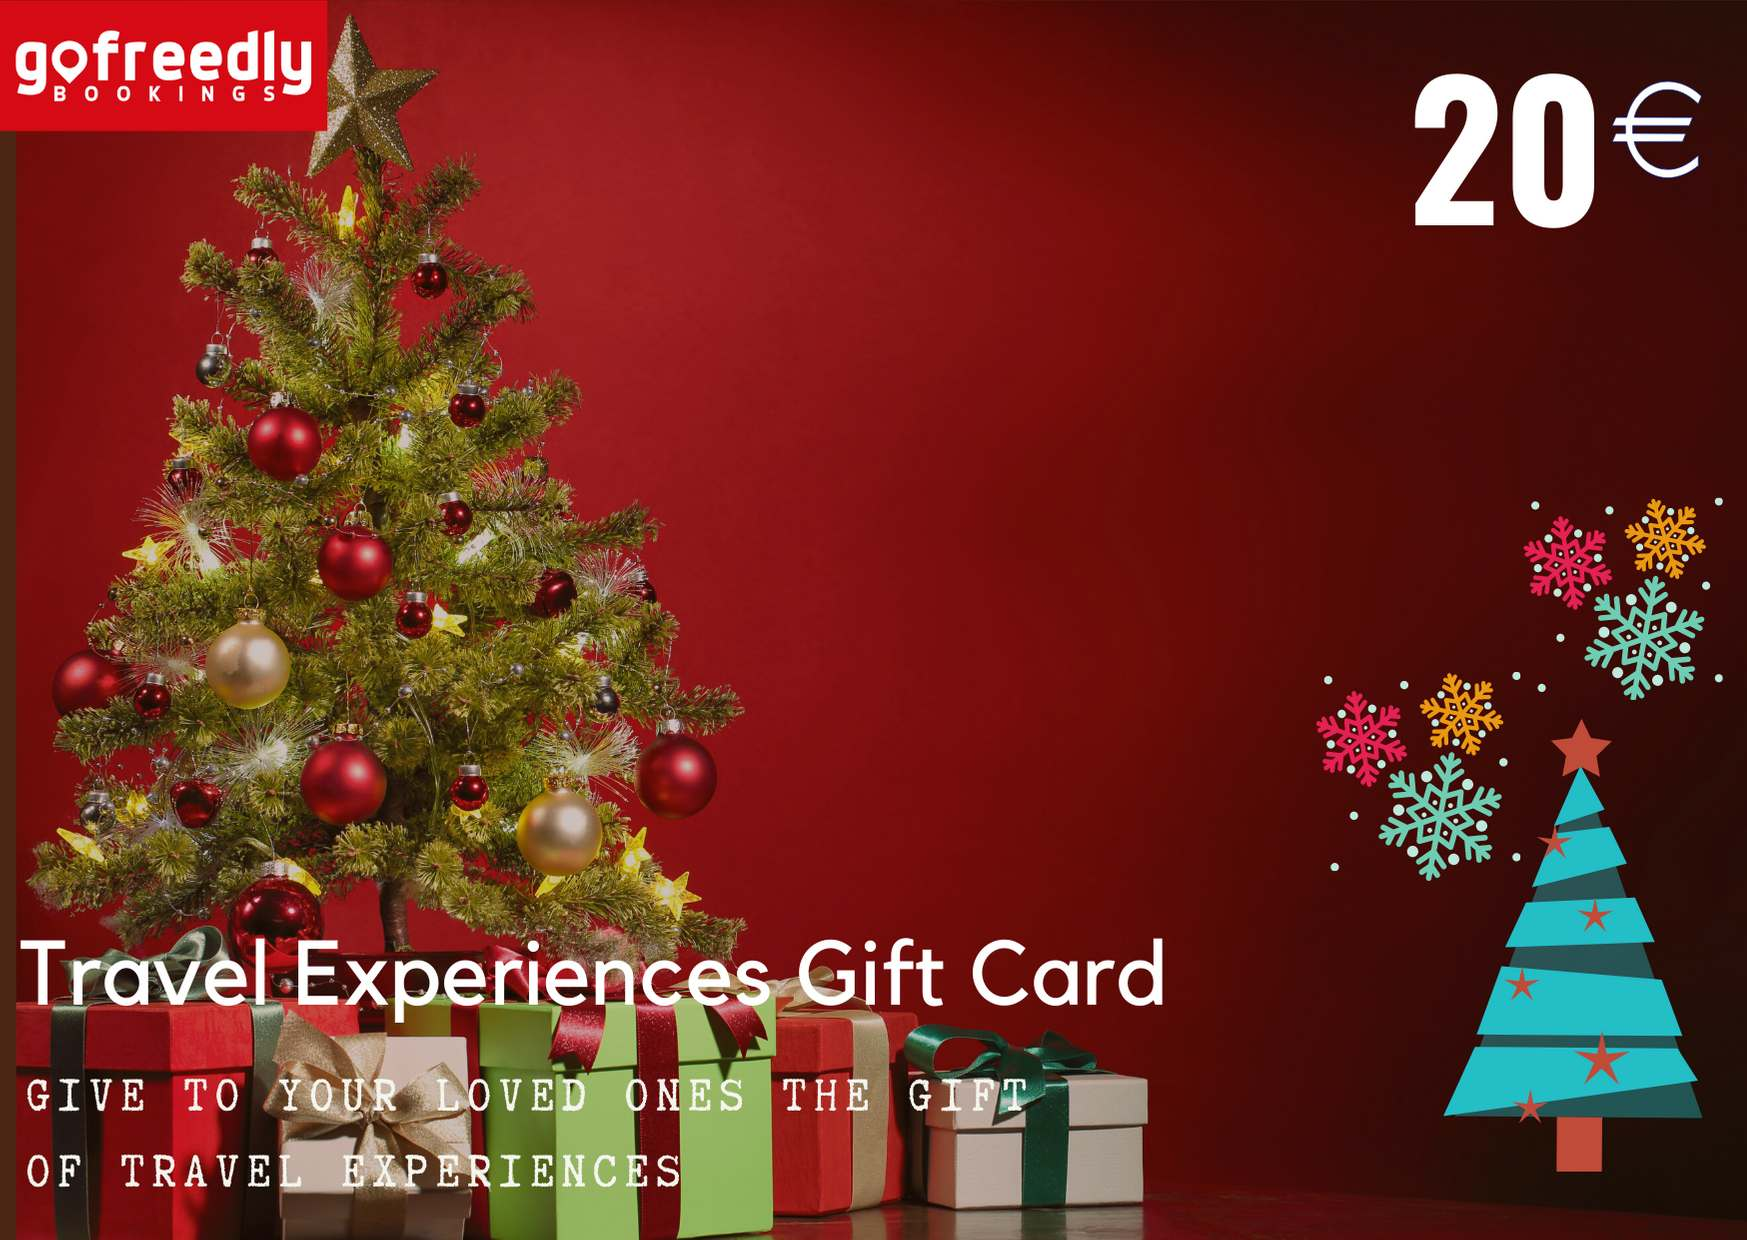 Travel Experiences Gift Card from Gofreedly.com